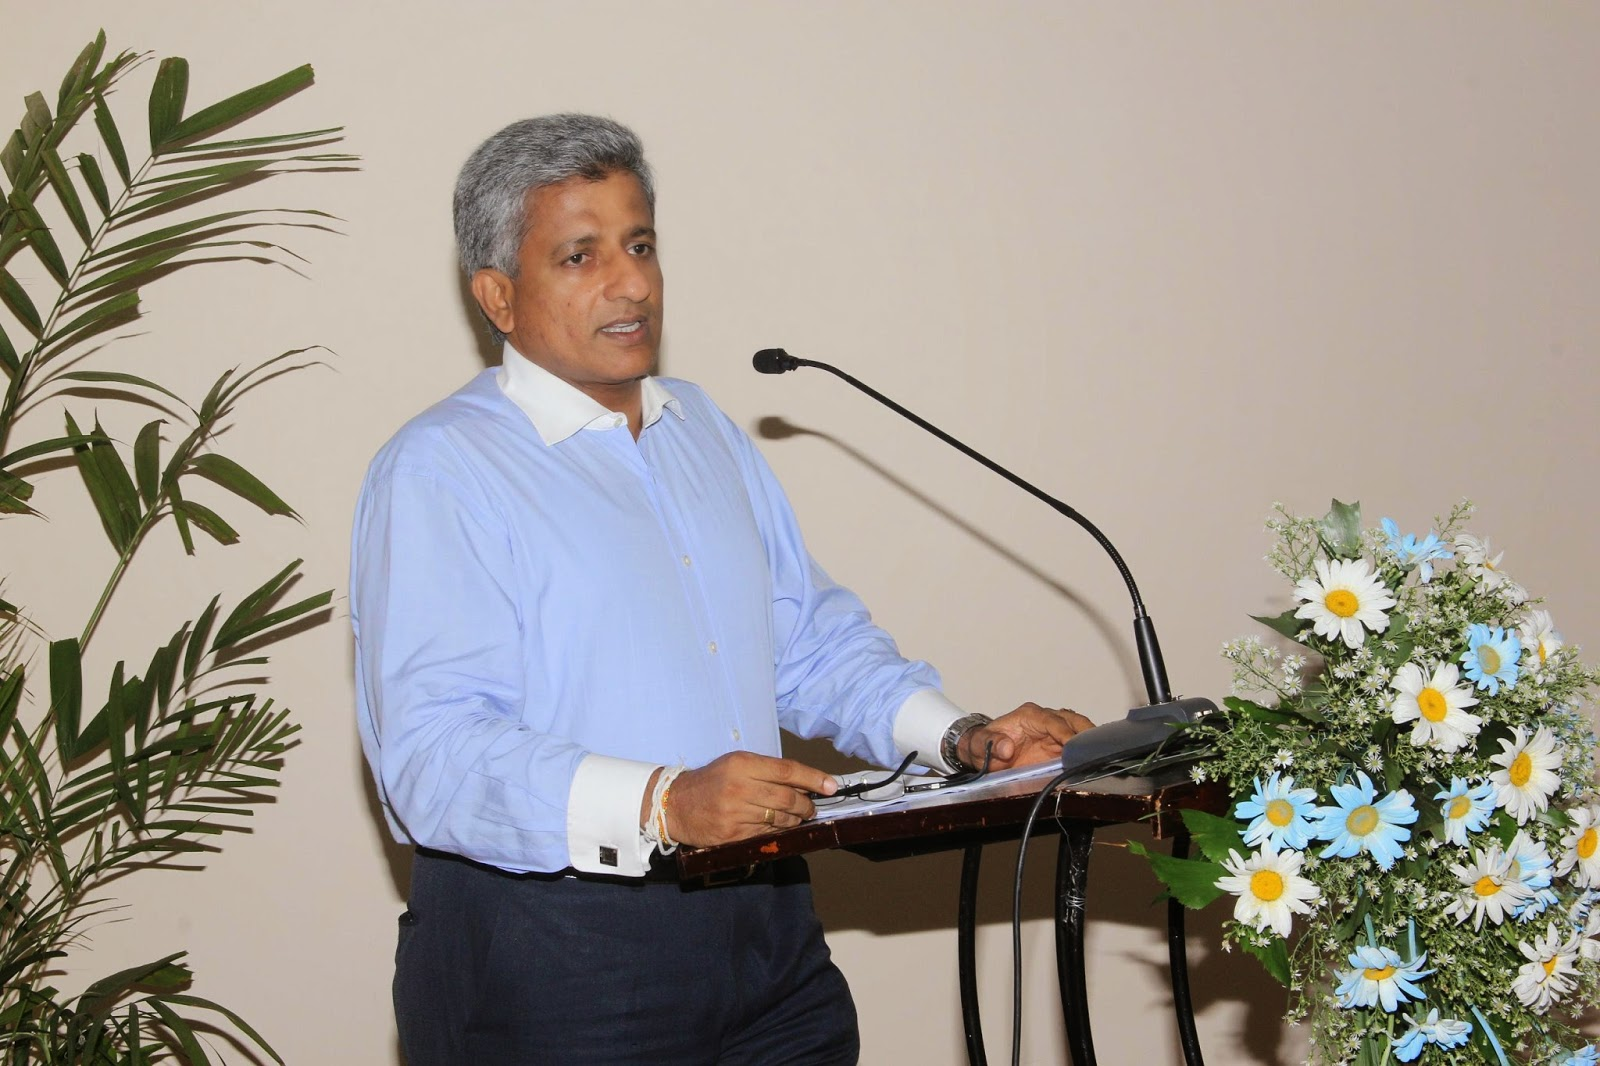 Nishantha Ranatunga – Chairman, Mihin Lanka addressing the gathering